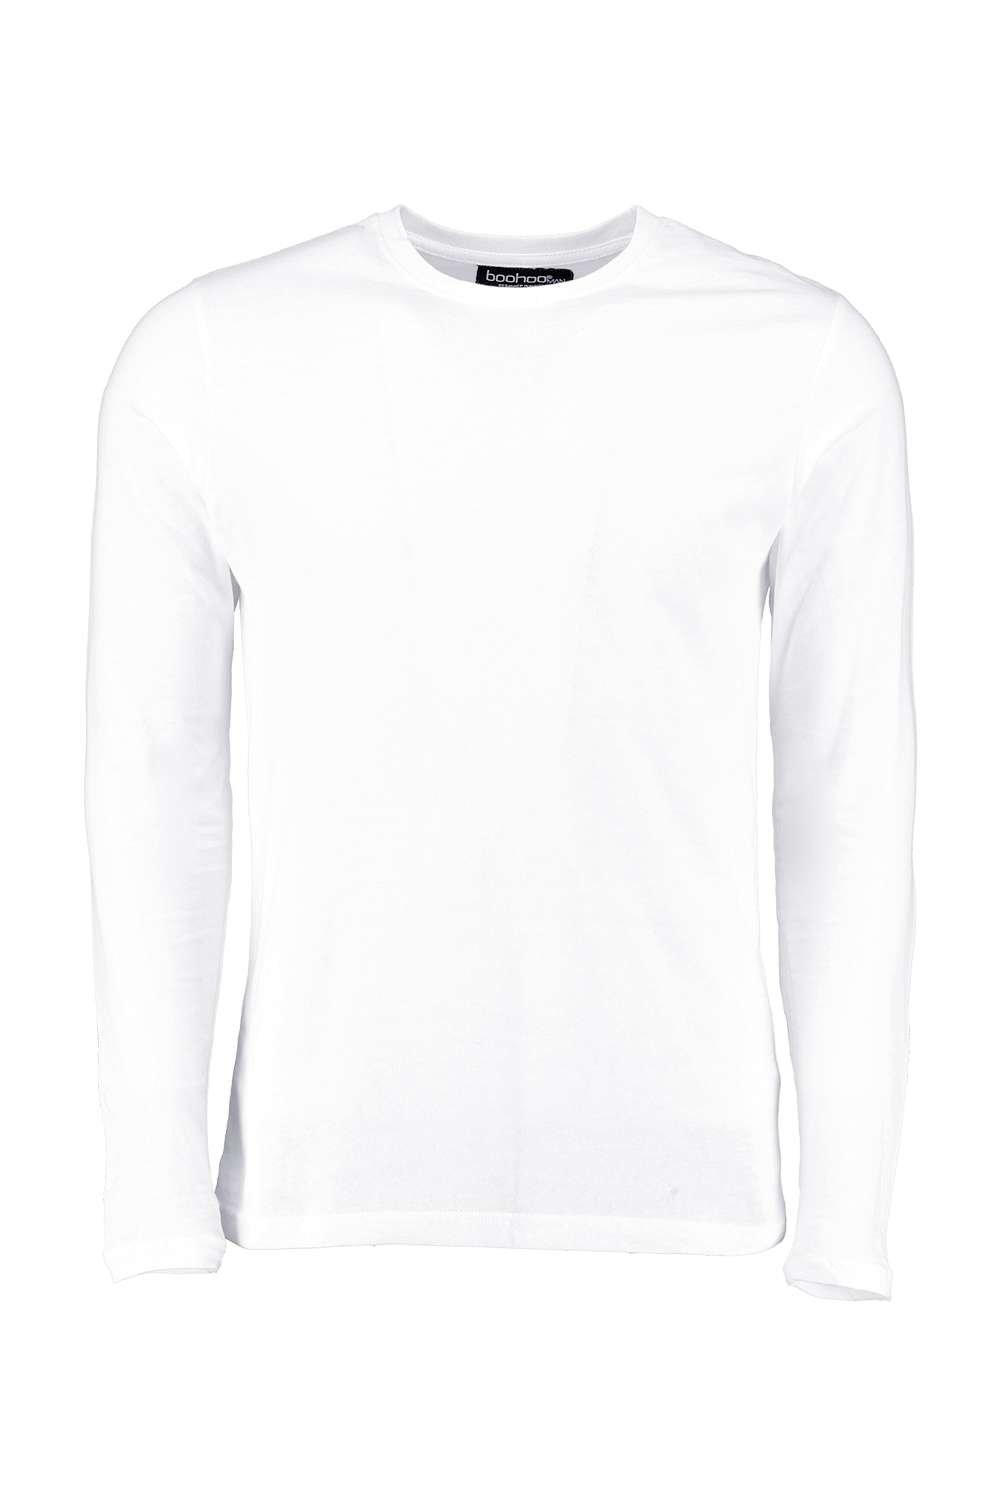 boohooMAN white Basic Long Sleeve Crew Neck T Shirt